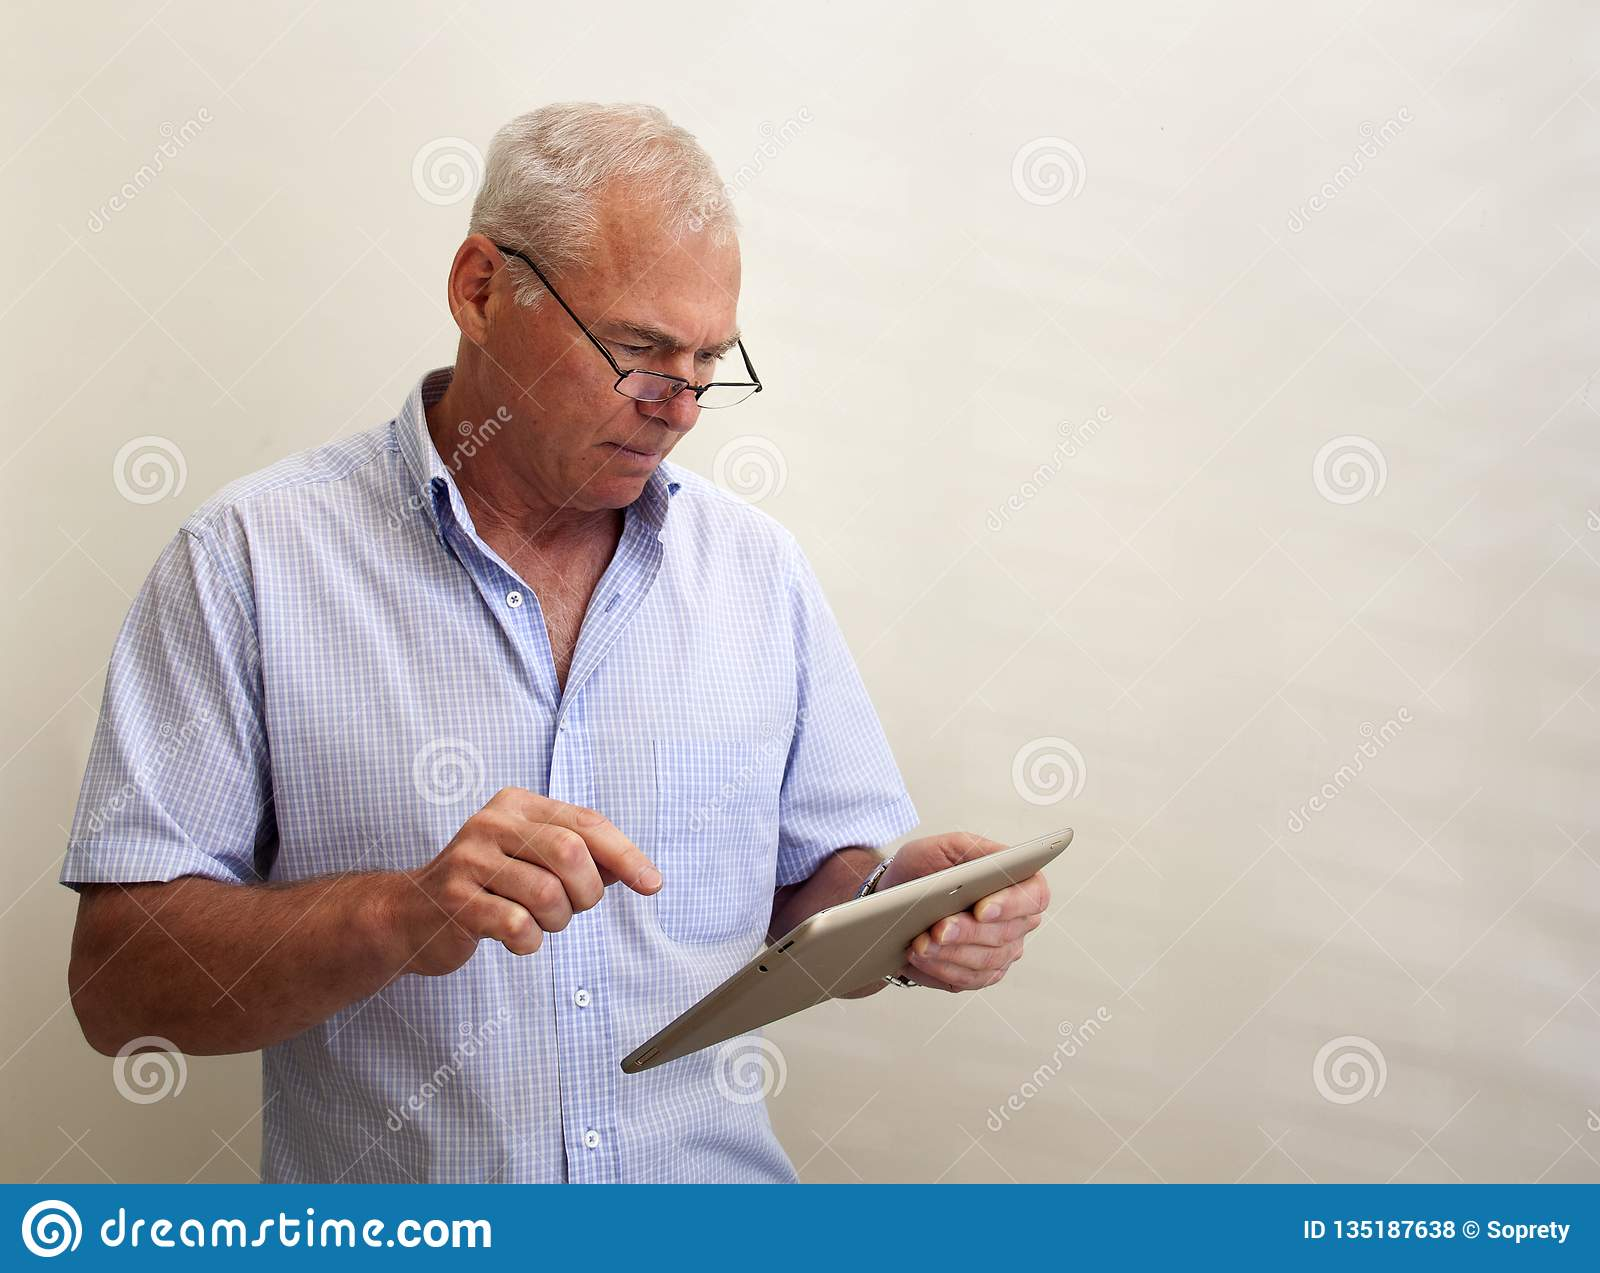 A man in his 60s with a pc tablet in his hand